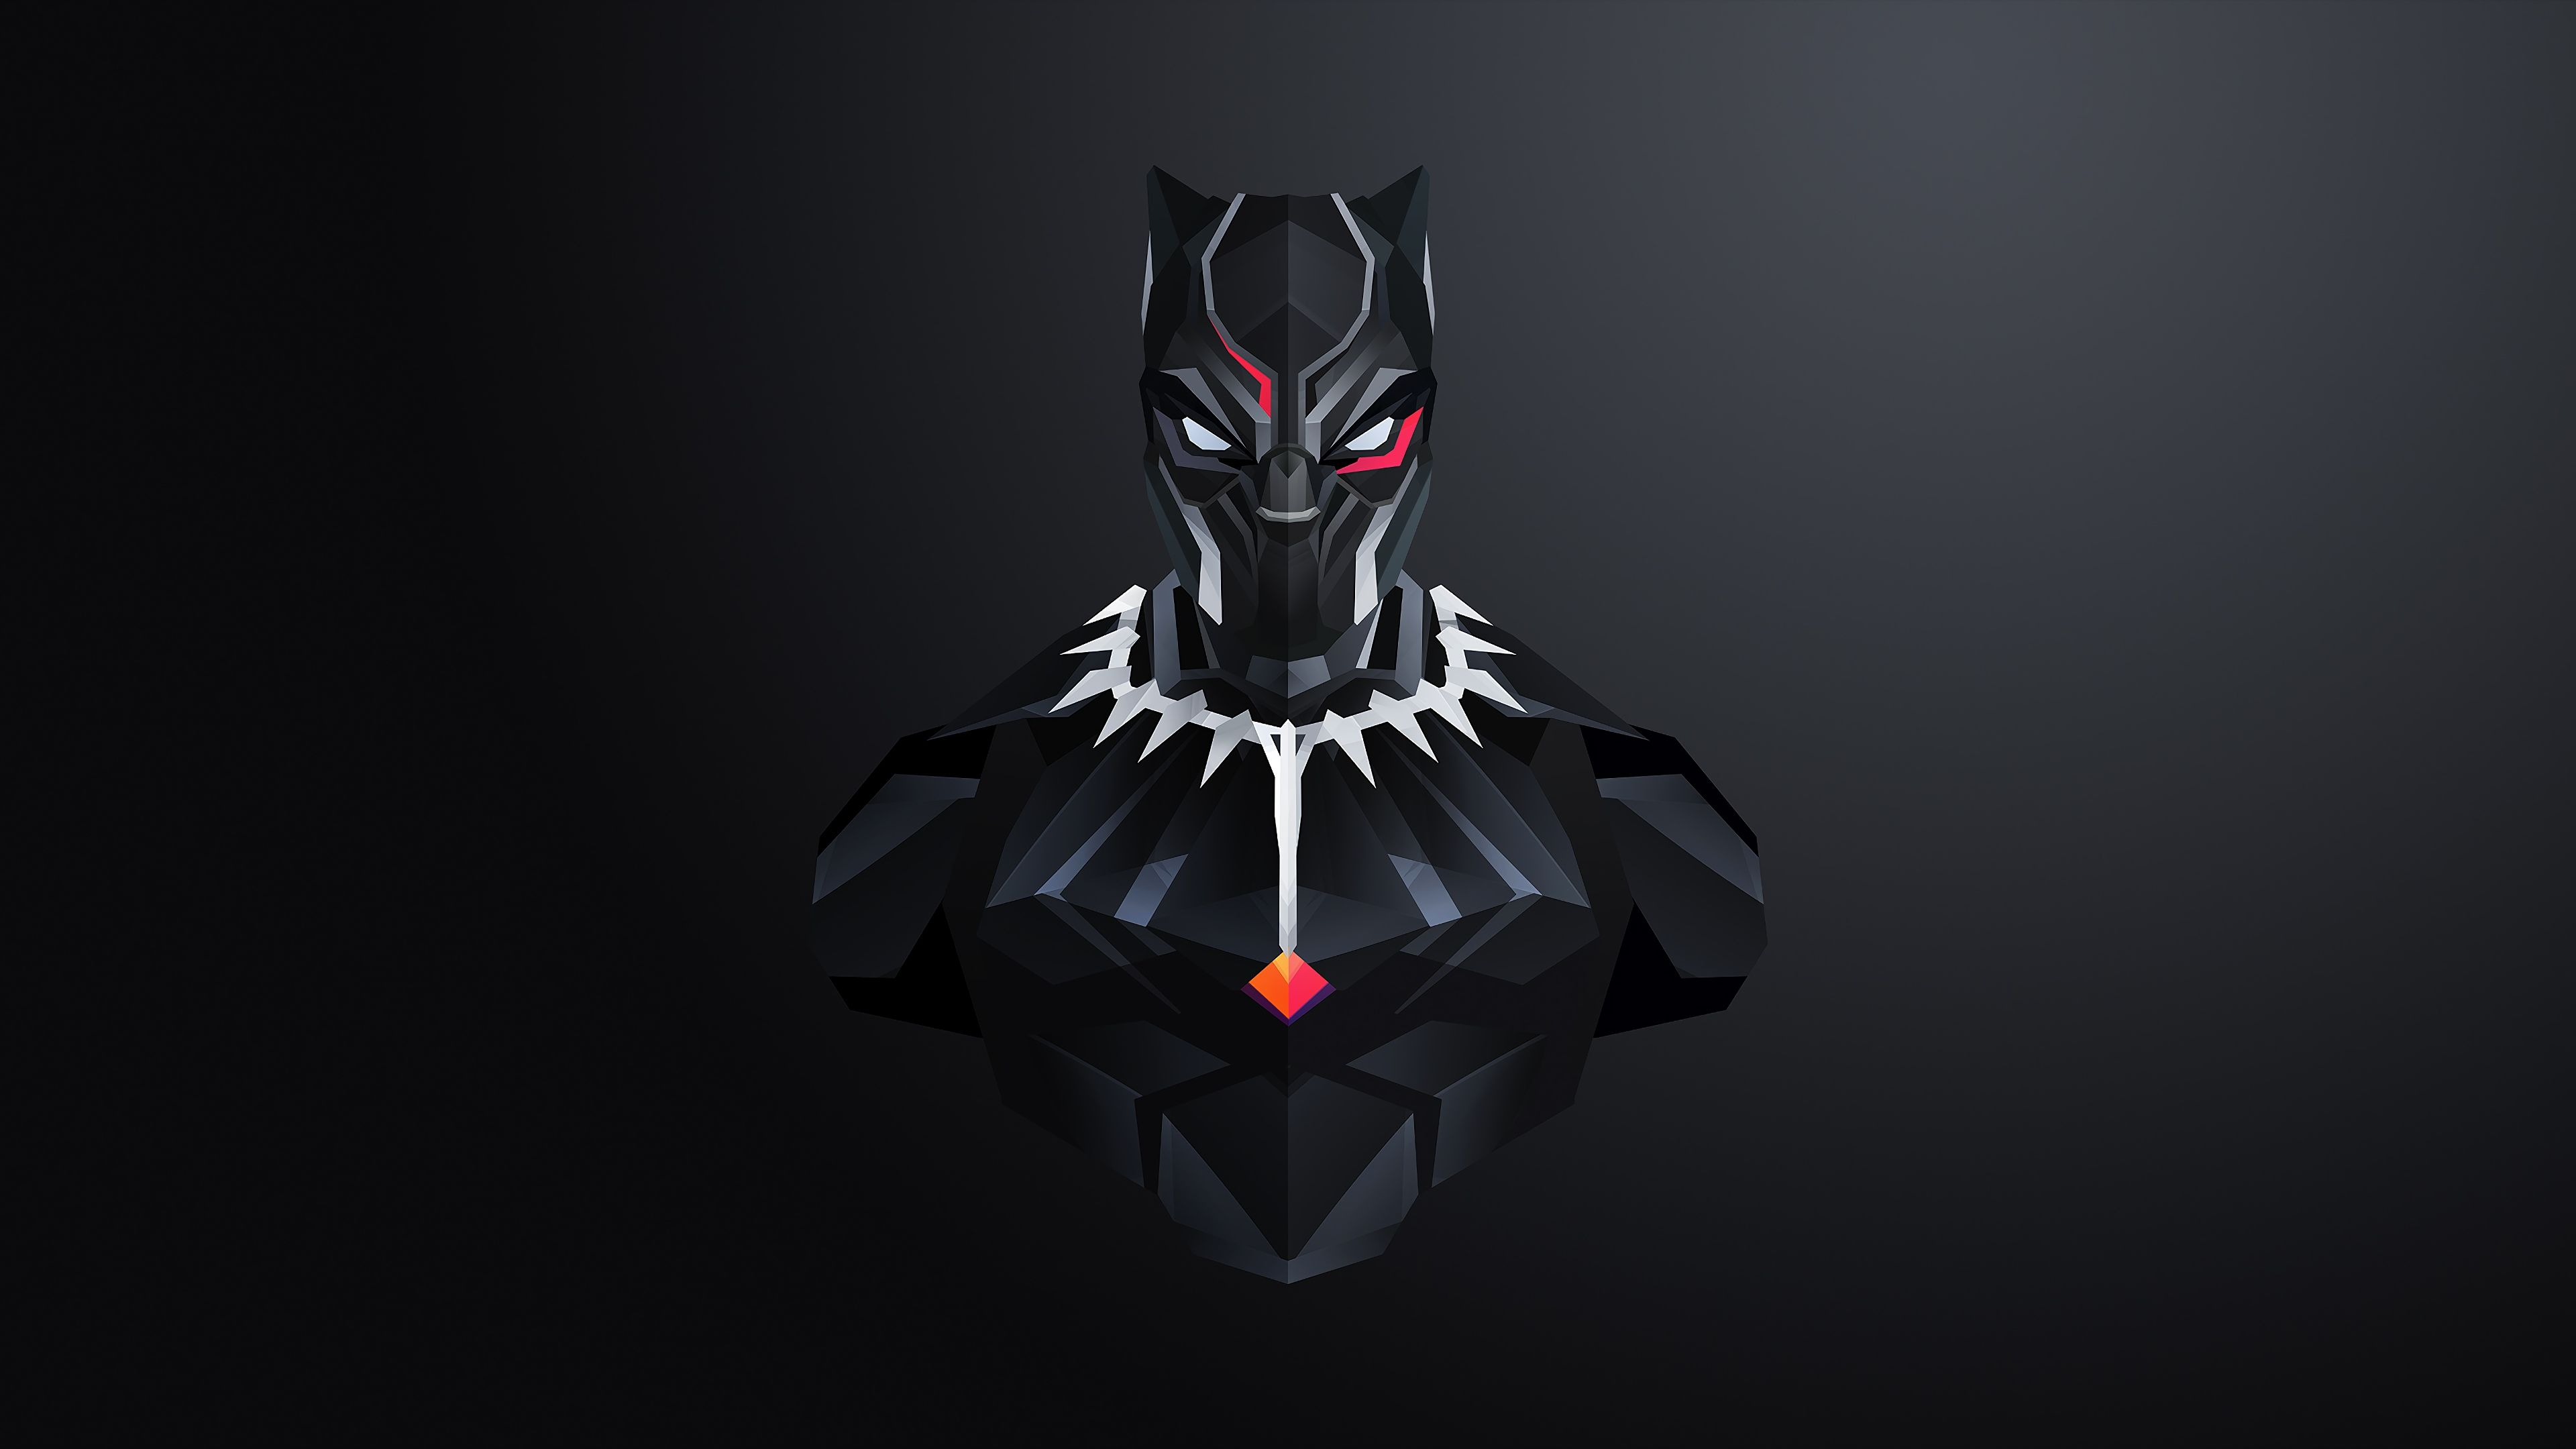 Black Panther Abstract Wallpaper